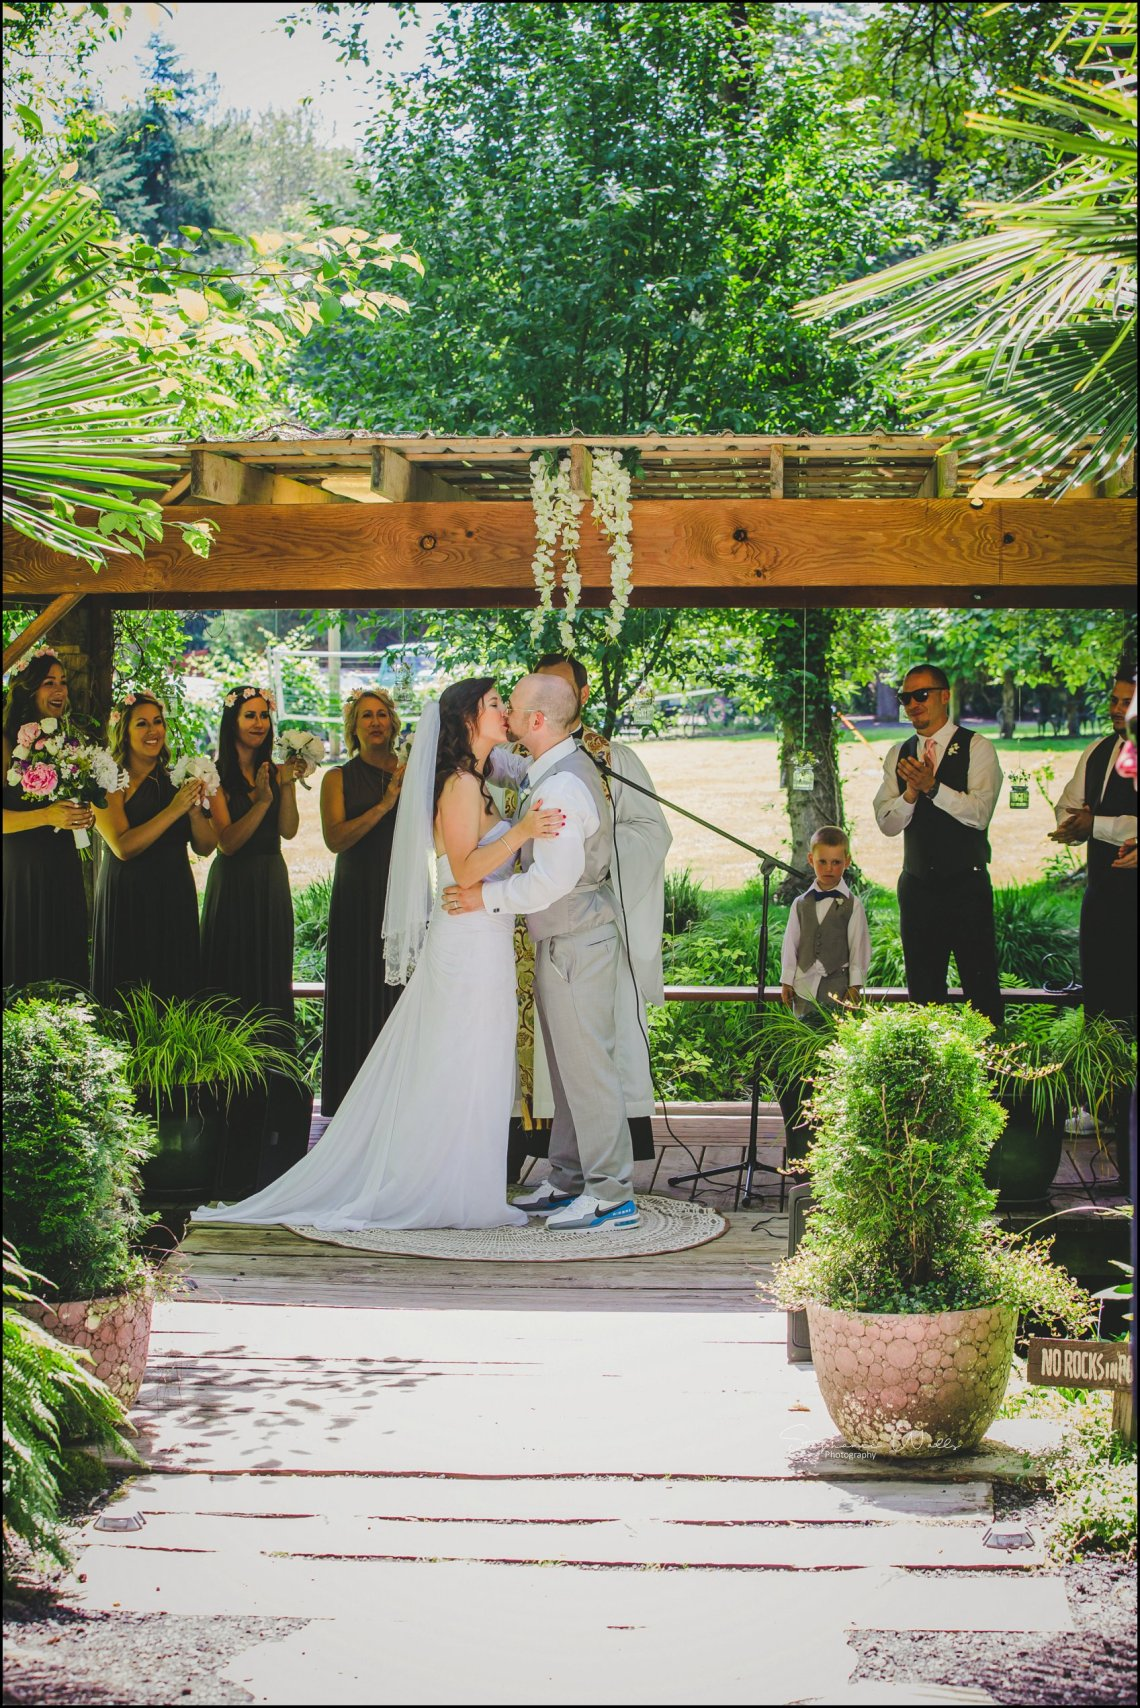 Gauthier292 Catherane & Tylers Diyed Maroni Meadows Wedding | Snohomish, Wa